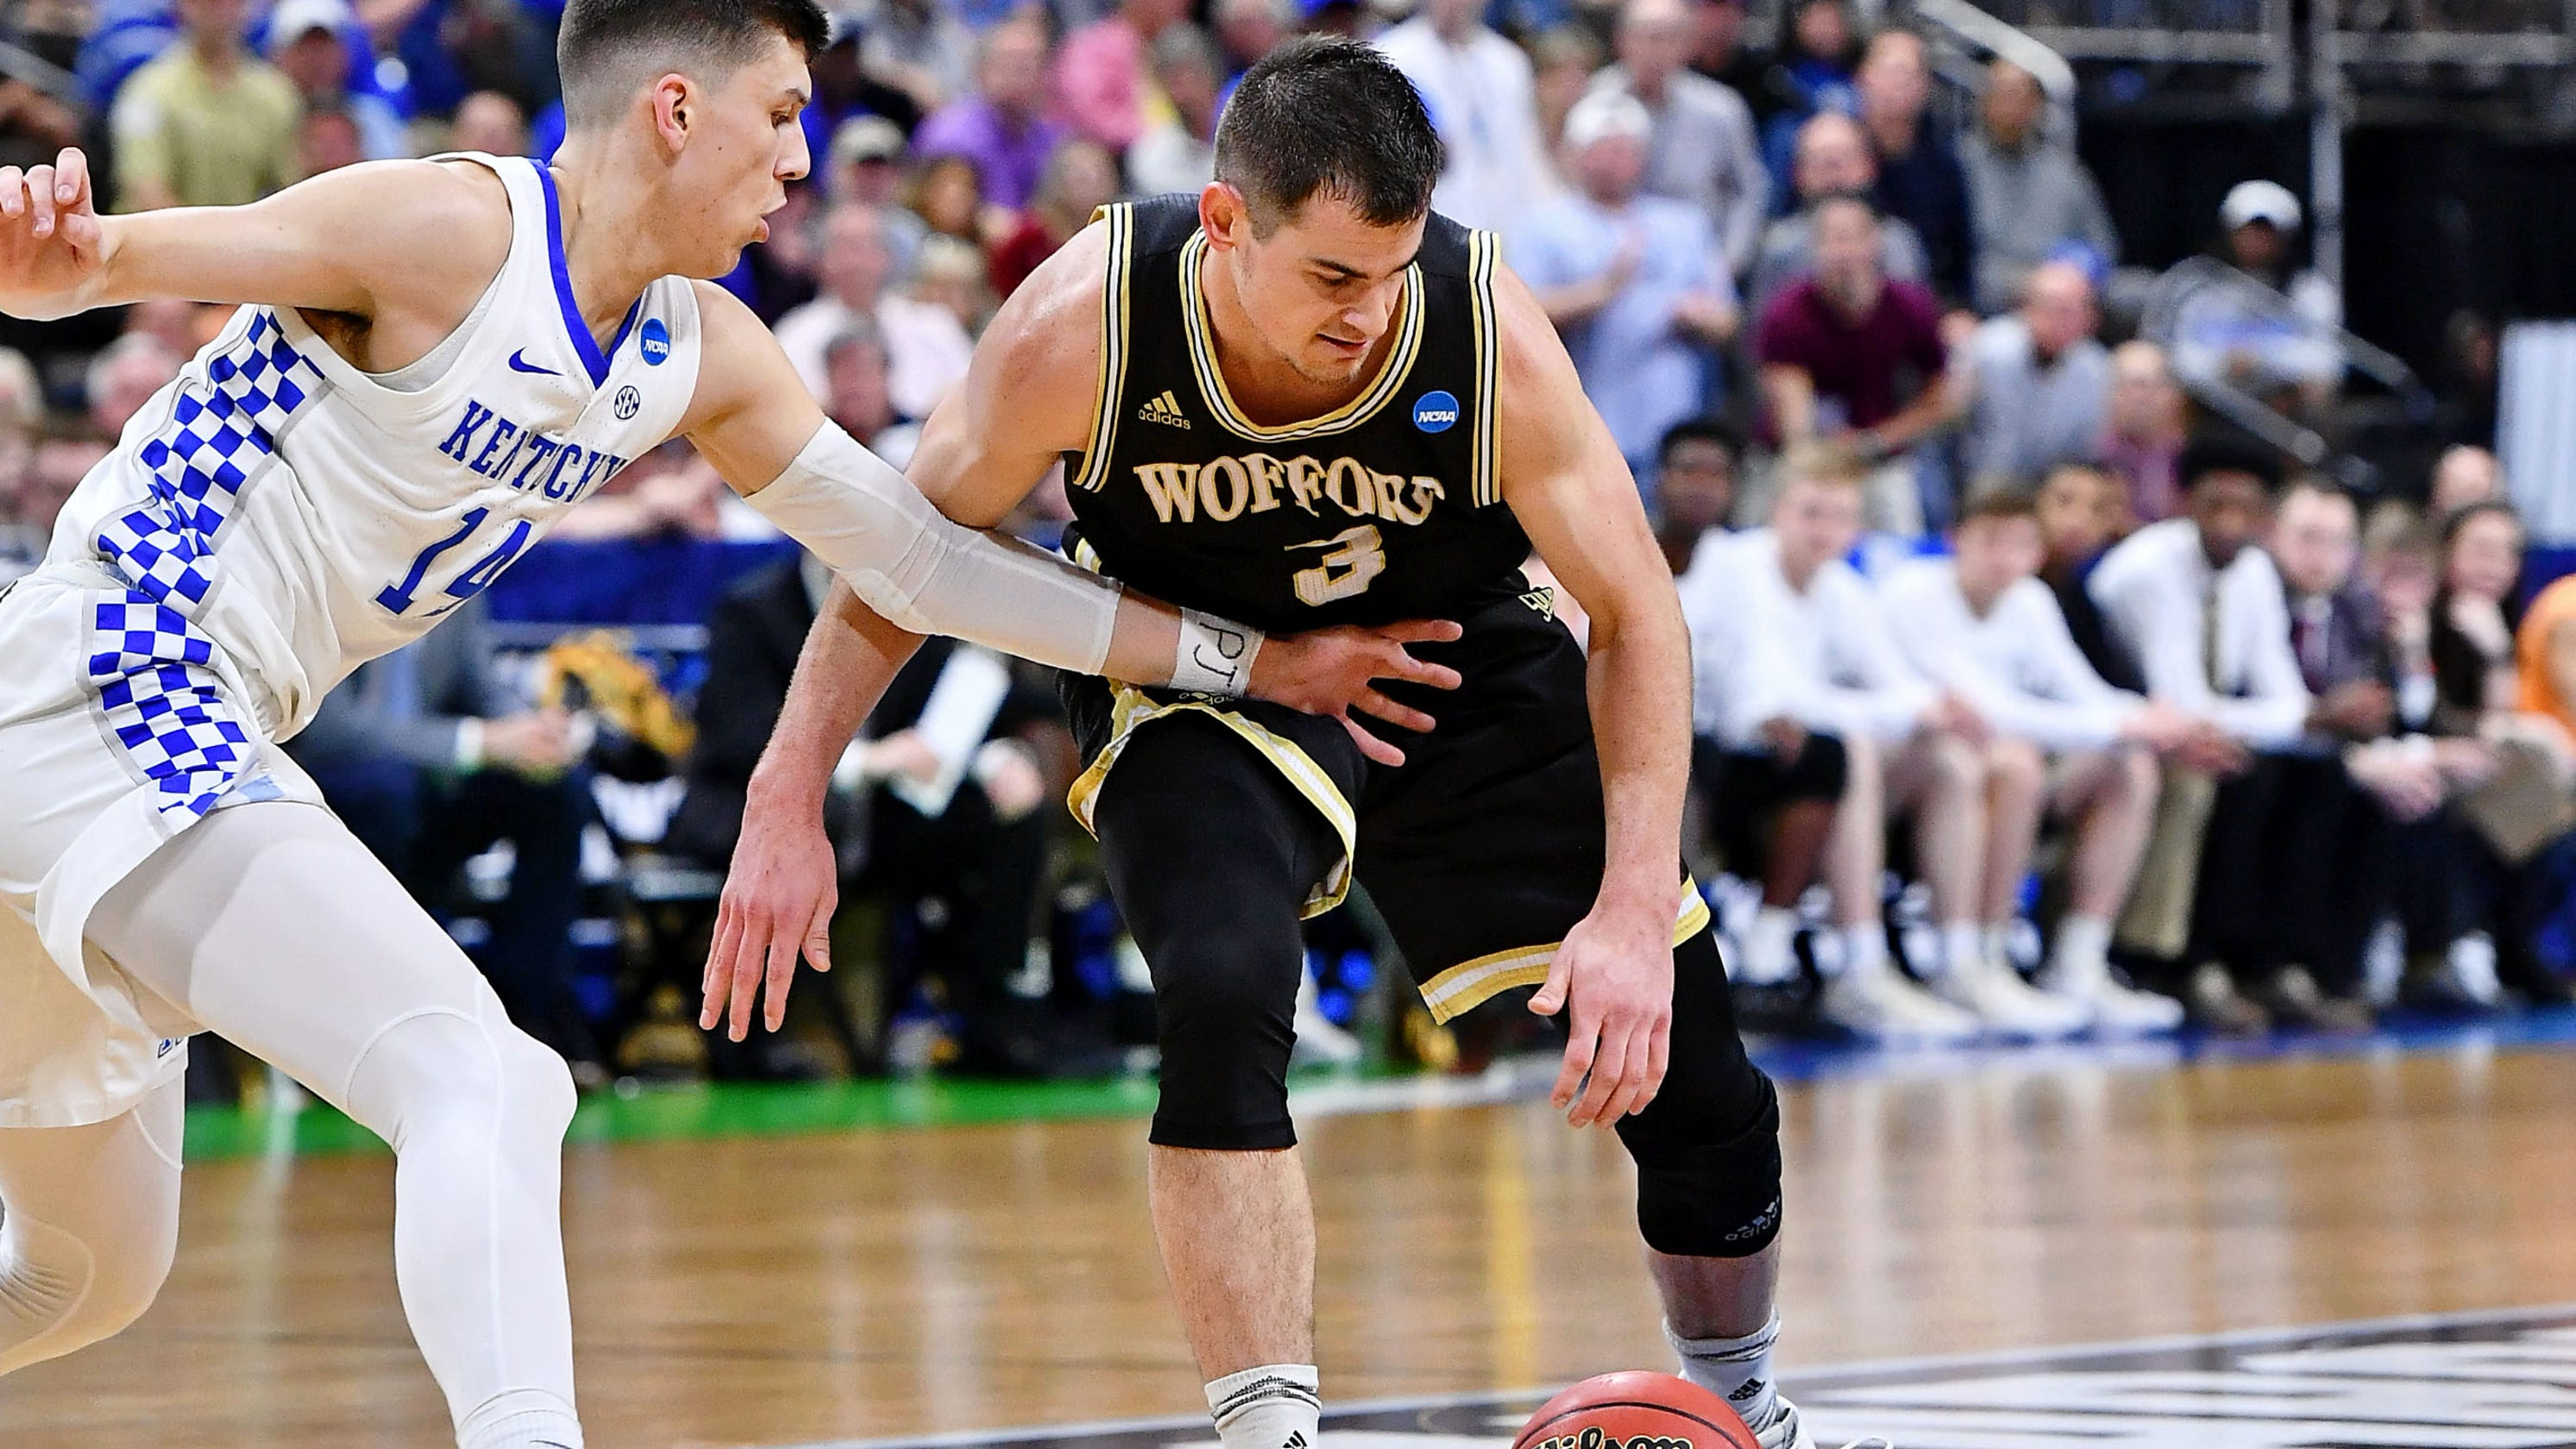 Fletcher Magee has nightmare 0-for-12 3-point shooting night as Wofford falls to Kentucky